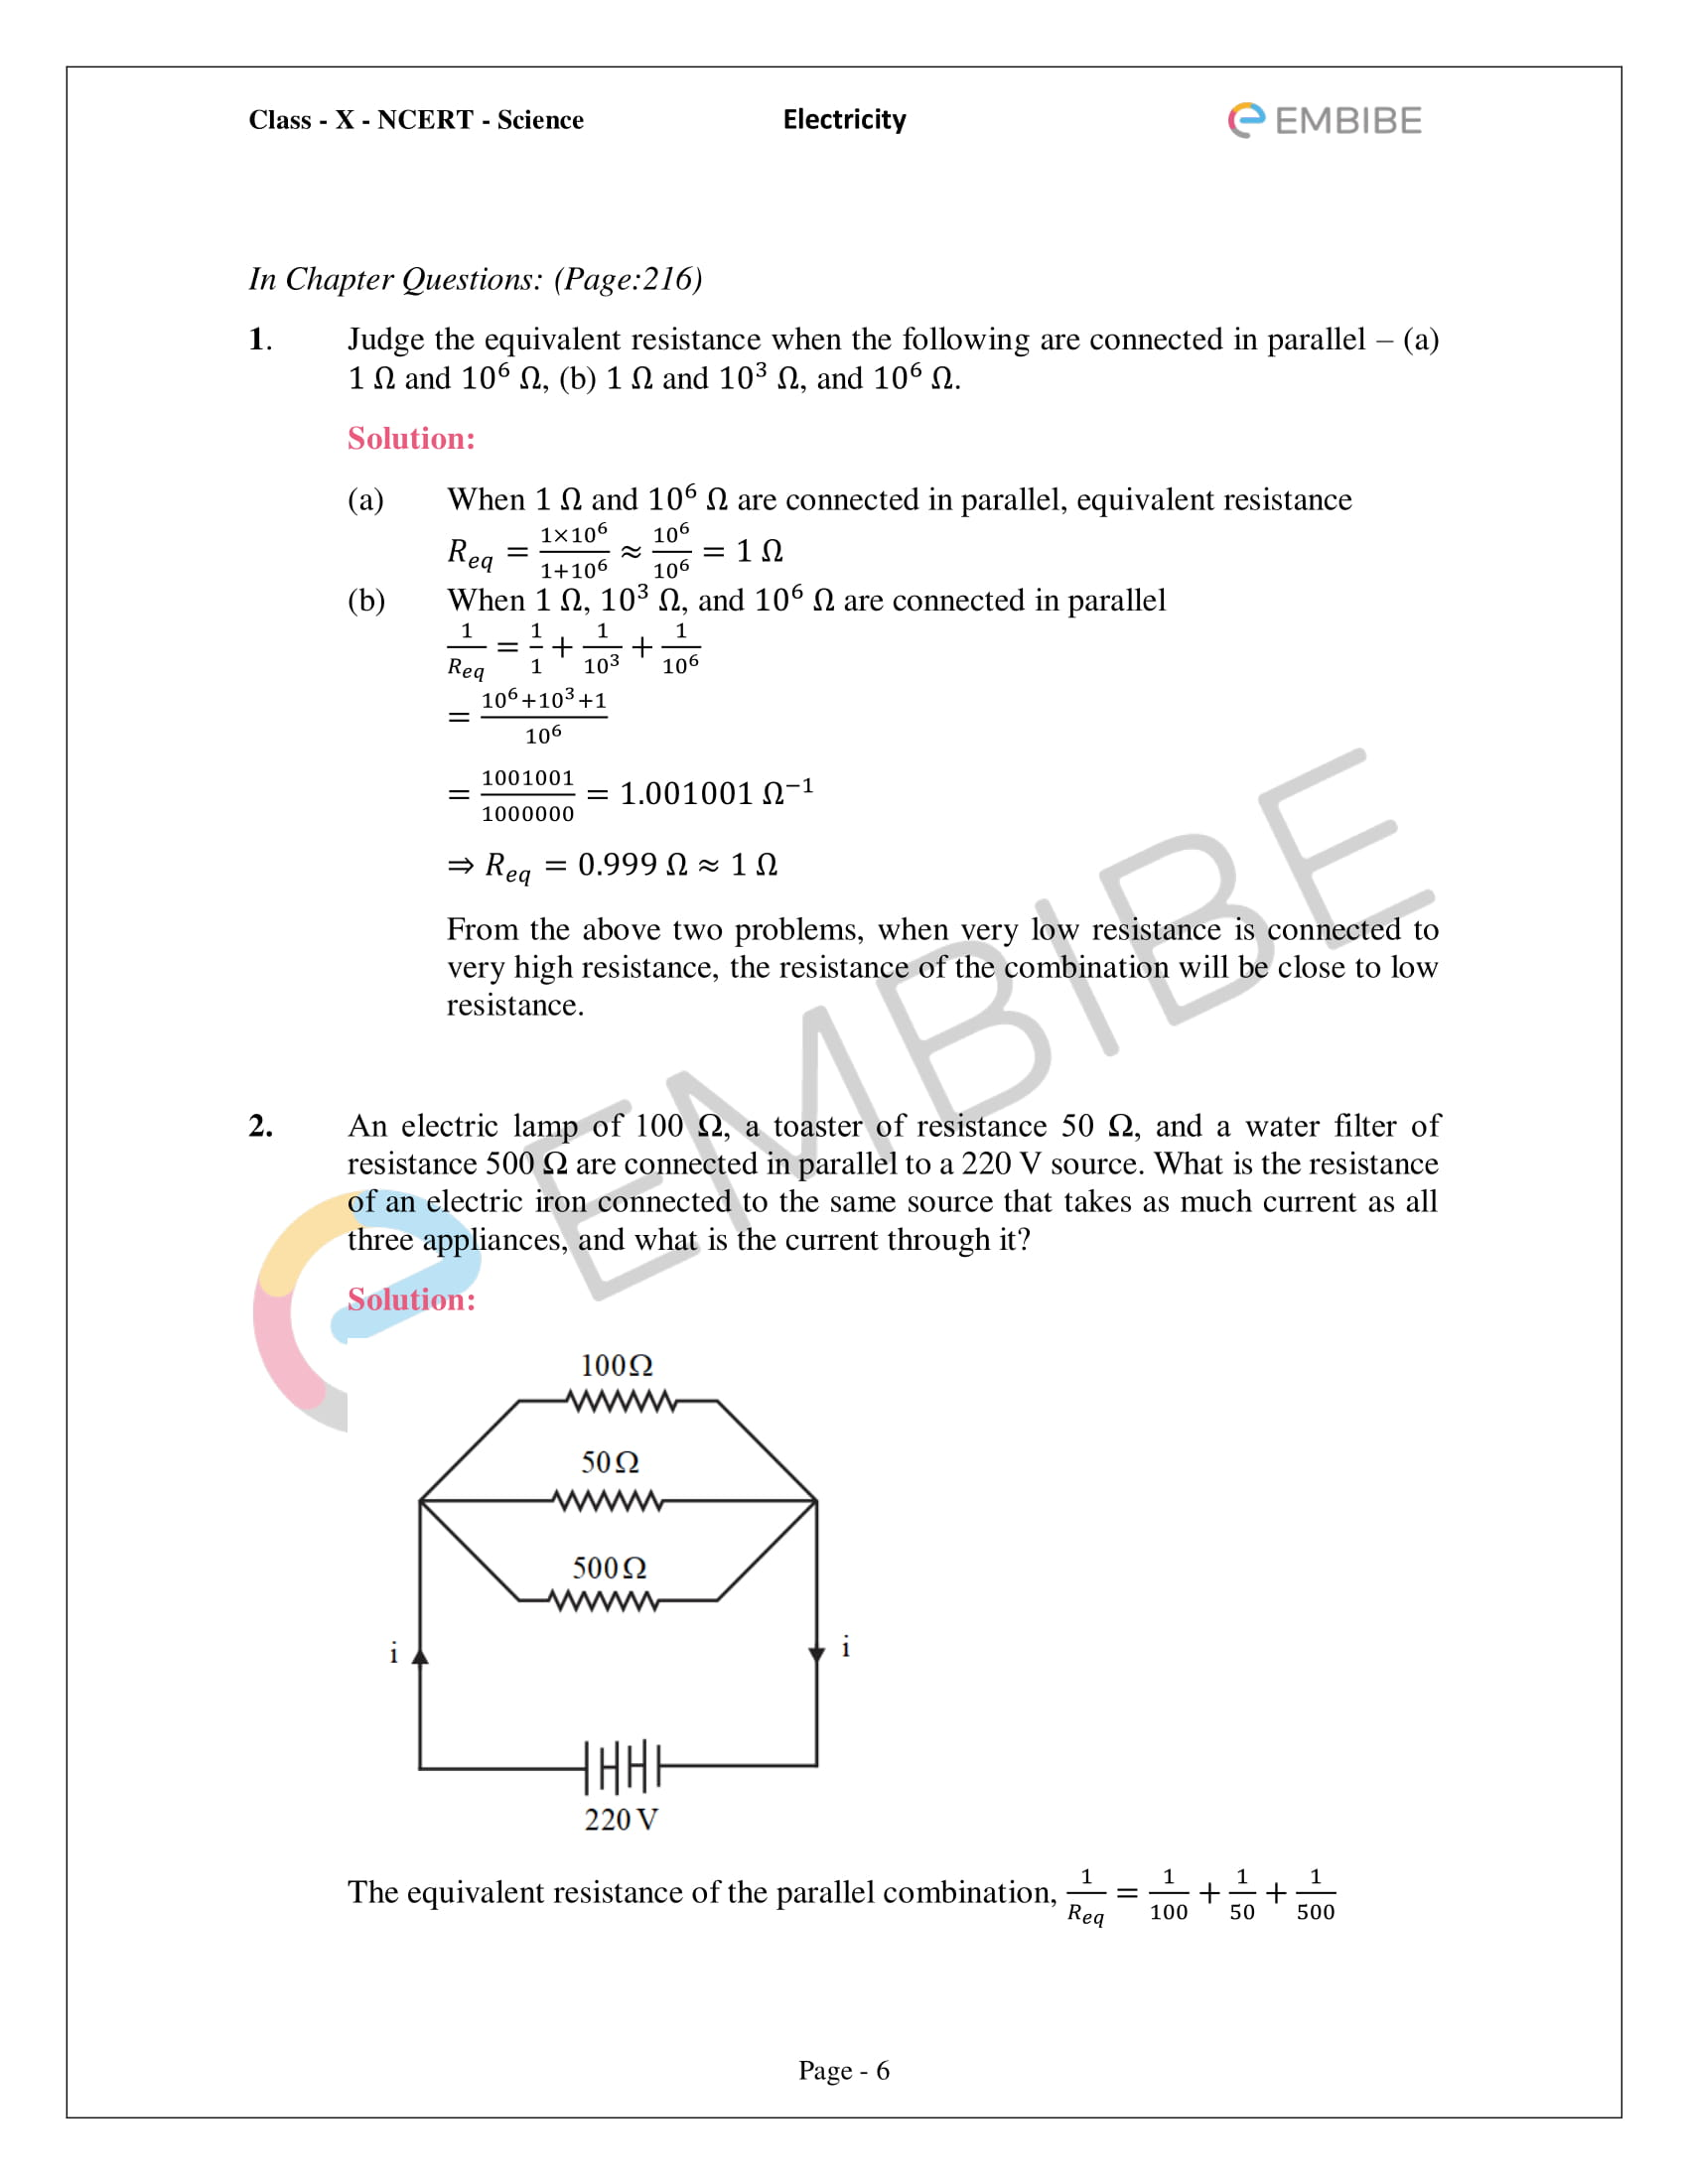 CBSE NCERT Solutions For Class 10 Science Chapter 12 - Electricity - 6